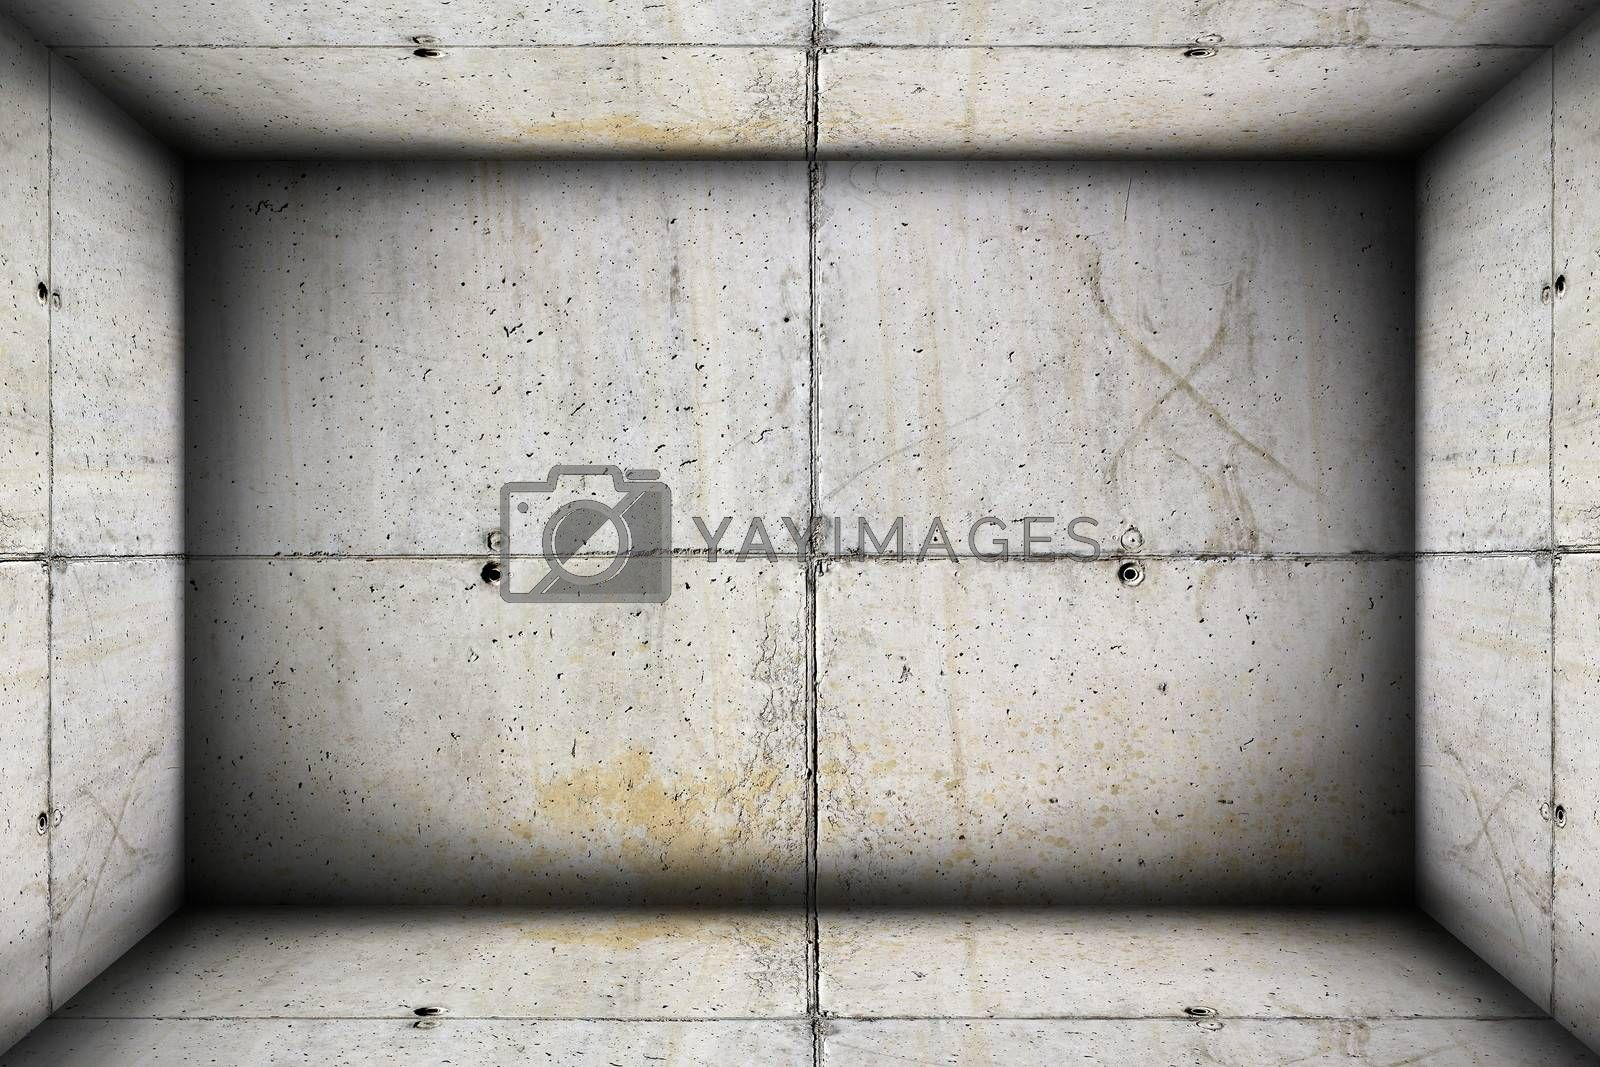 unfinished concrete  industrial interior backdrop for your design